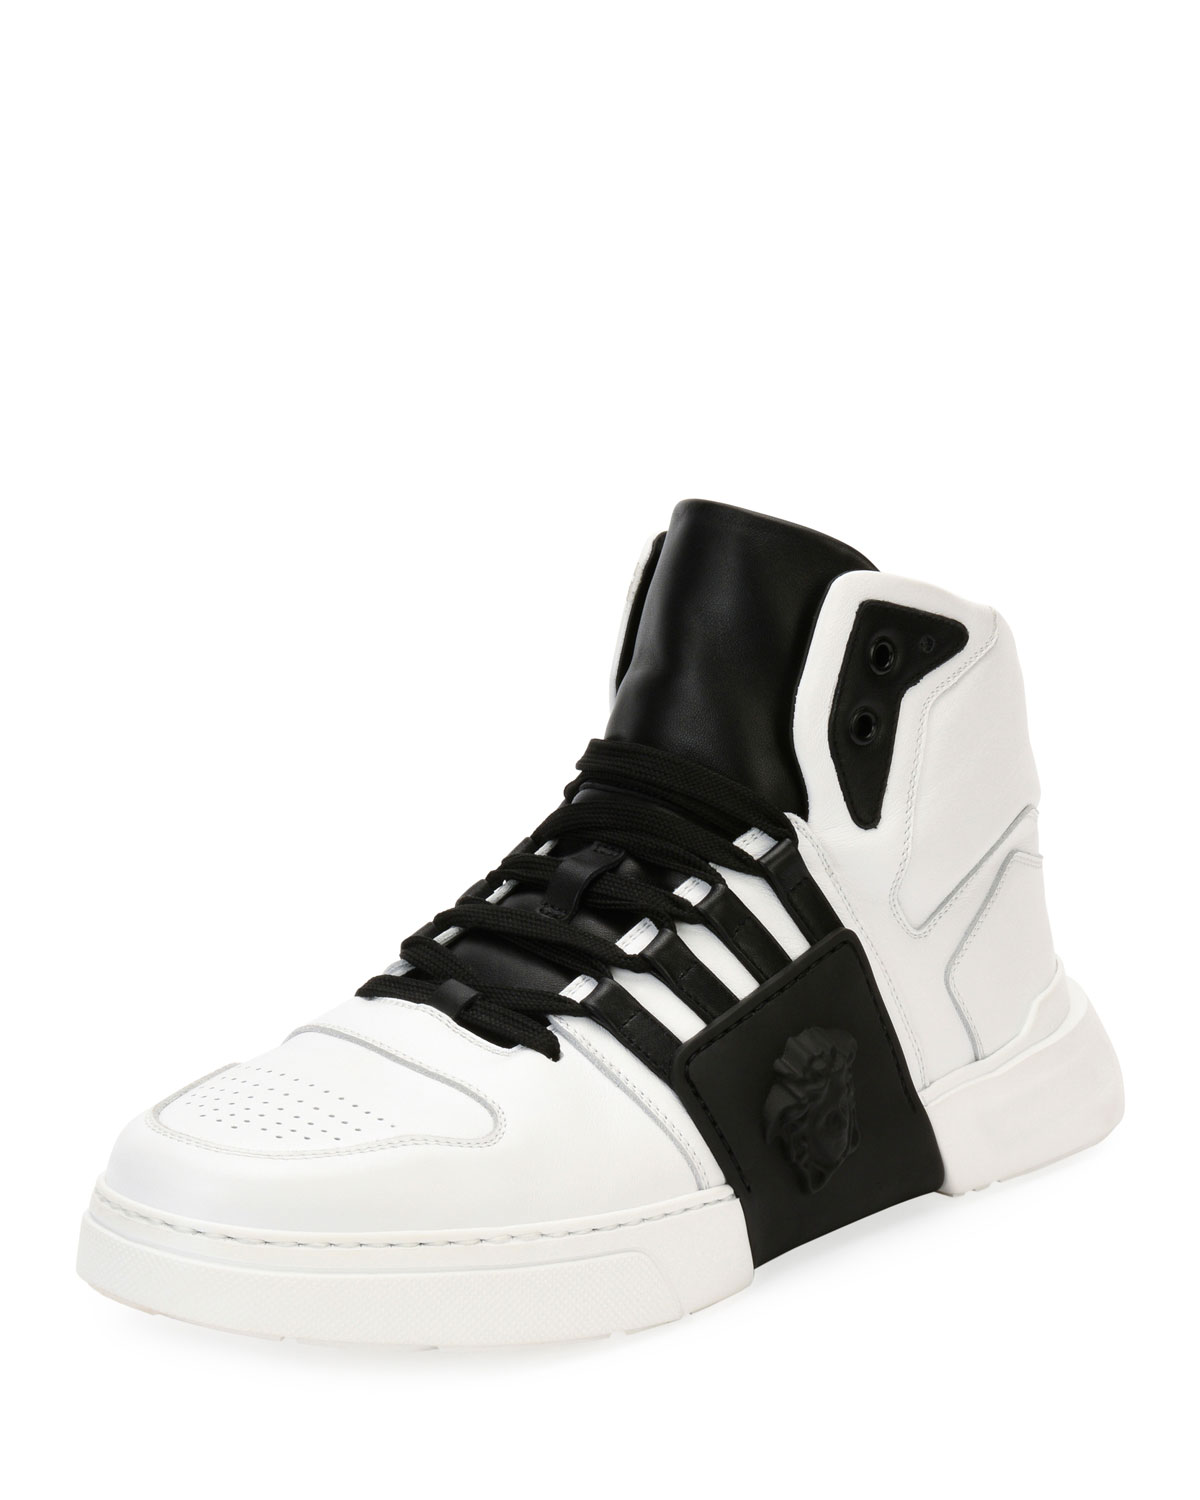 5d373e5f96c Versace Men s Fashion Show Medusa-Embossed High-Top Sneakers ...